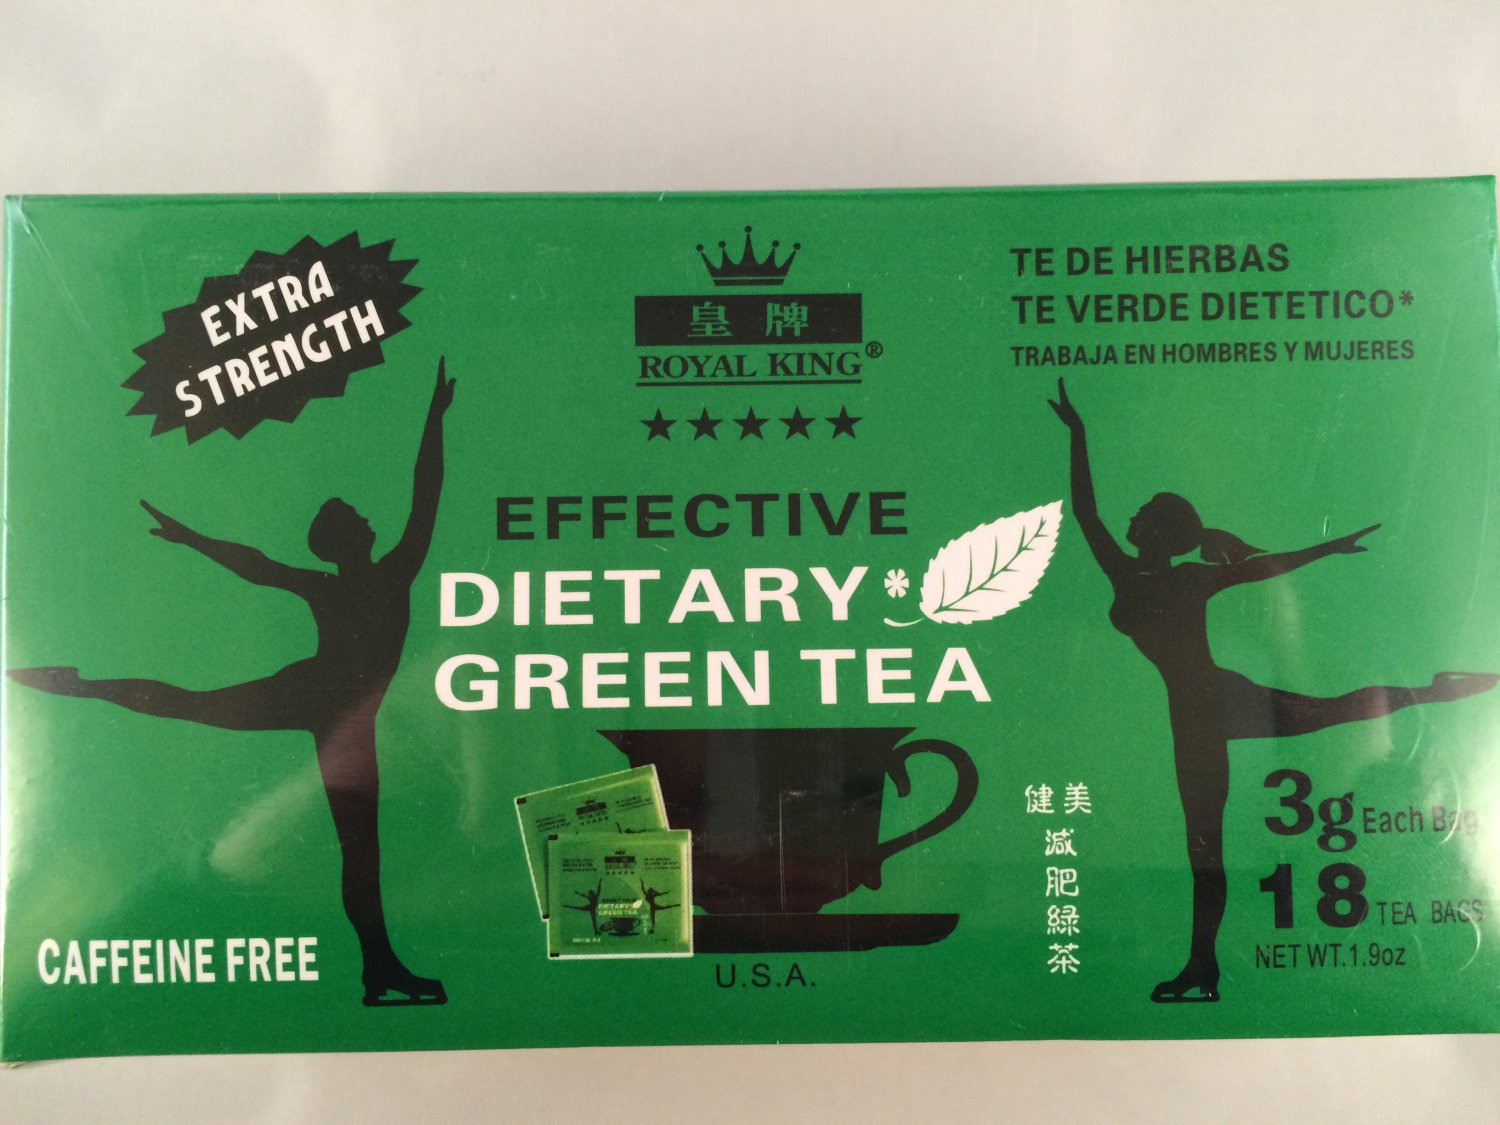 Royal King-extra Strength Effective Dietary Tea 36 Tea Bags